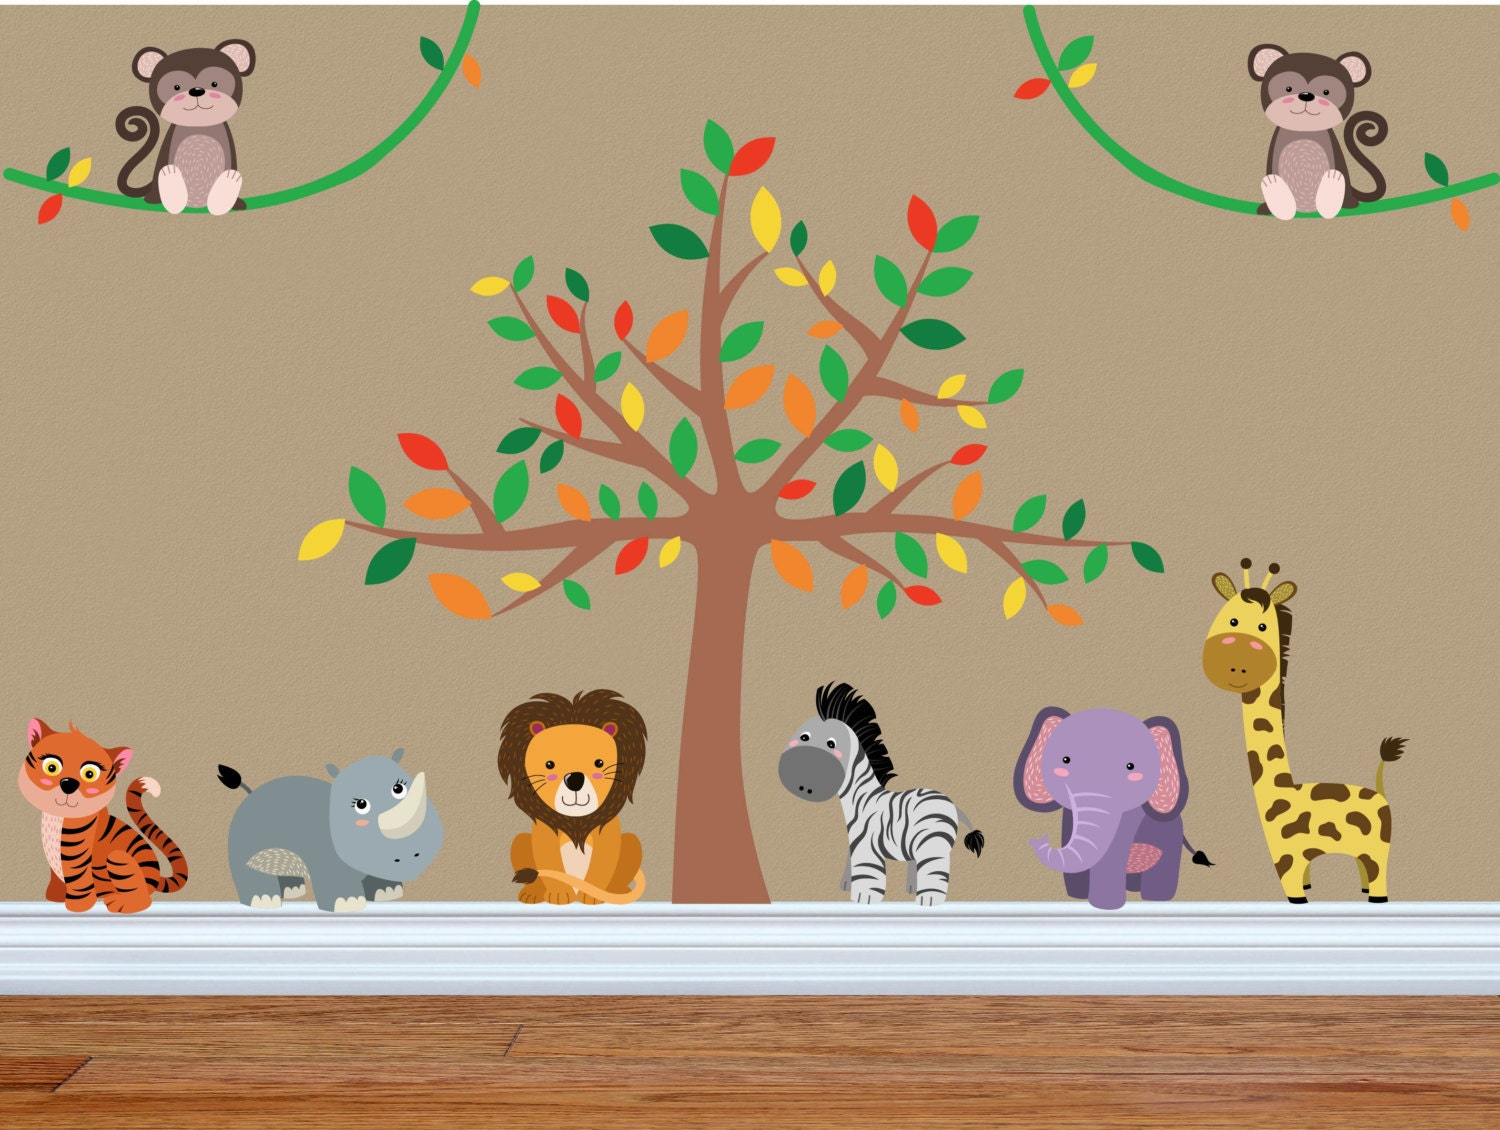 Jungle Nursery Decor Jungle Wall Decal Safari Wall Decal - Jungle themed nursery wall decals